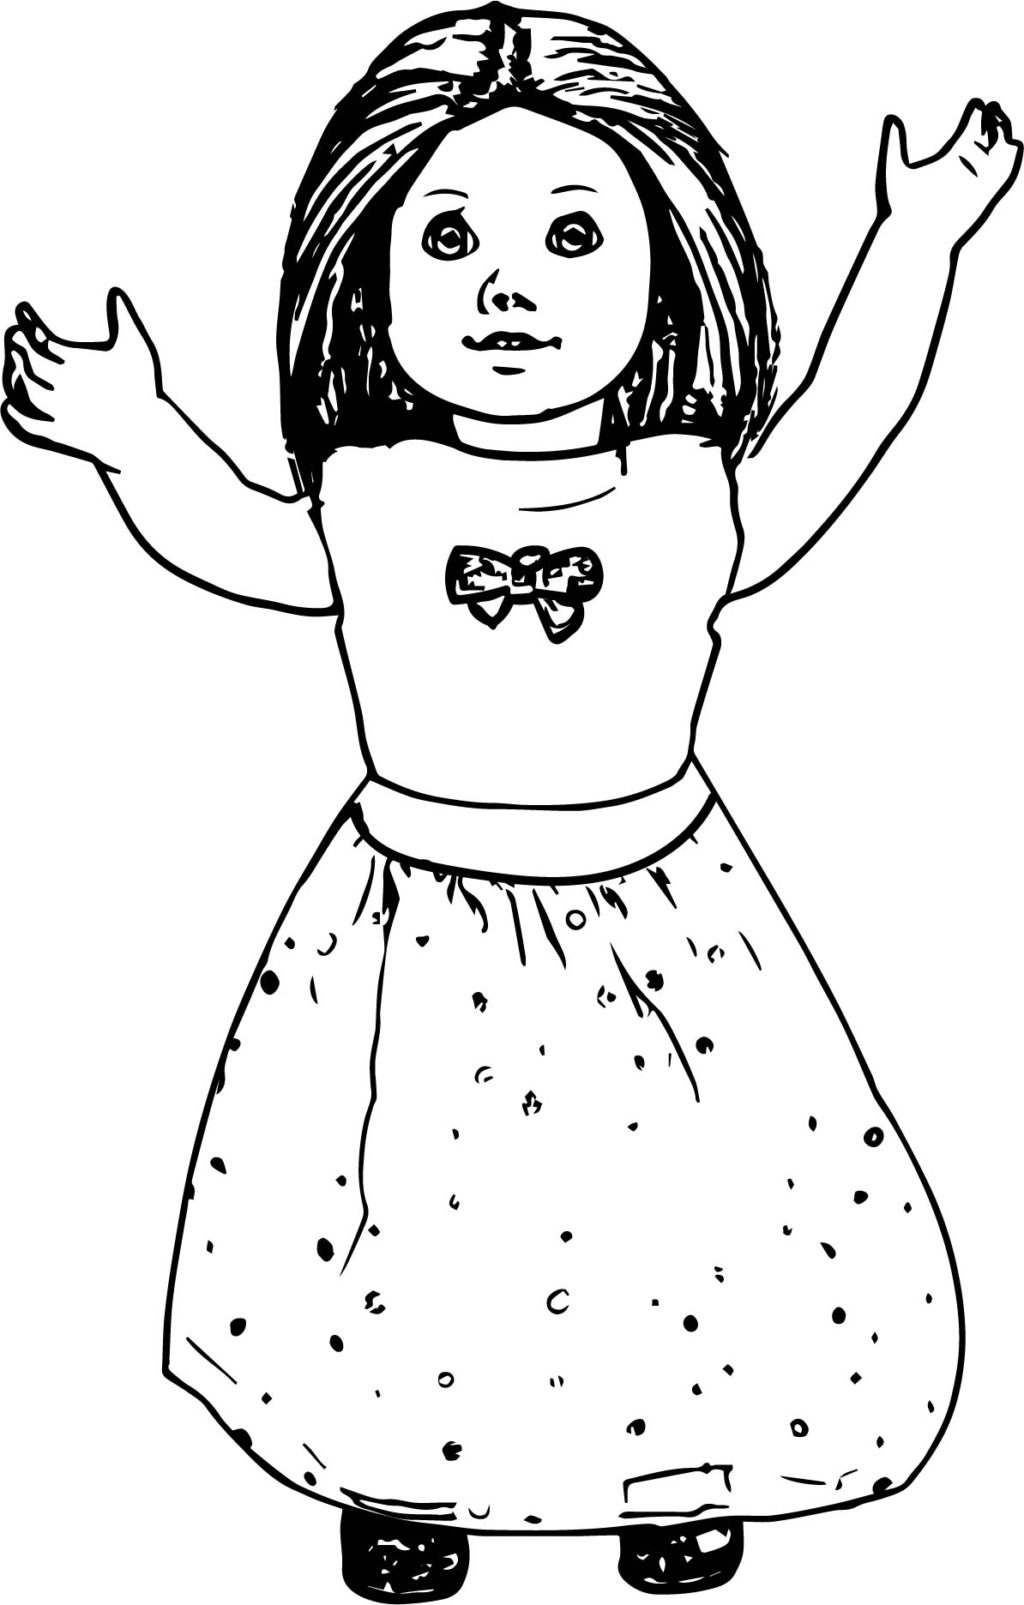 American Girl Coloring Pages Lea Coloring Book World Splendi American Girl Doll Coloring Pages